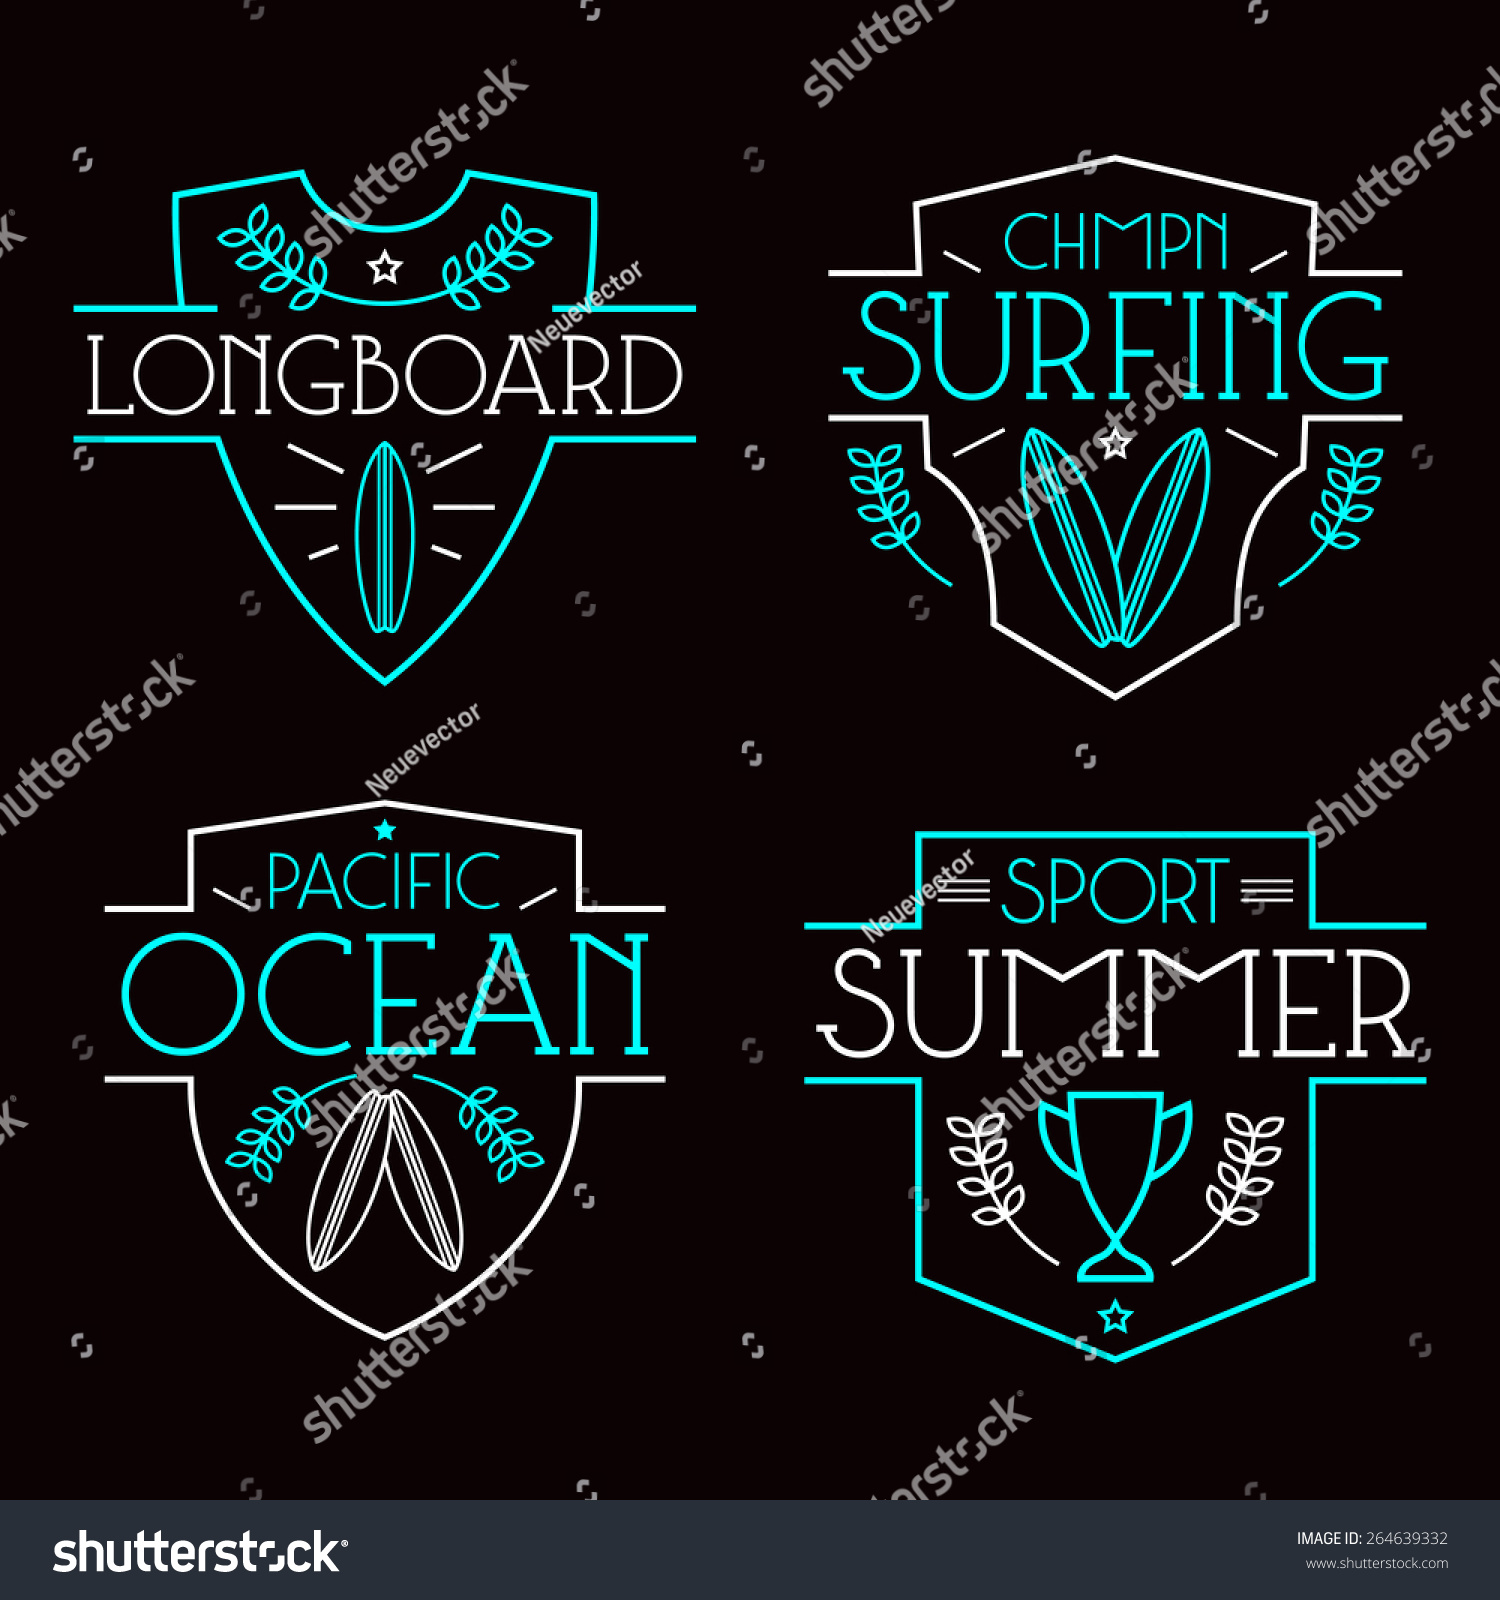 Design t shirt neon colors - Surfing Badges And Icons In Thin Line Style Graphic Design For T Shirt